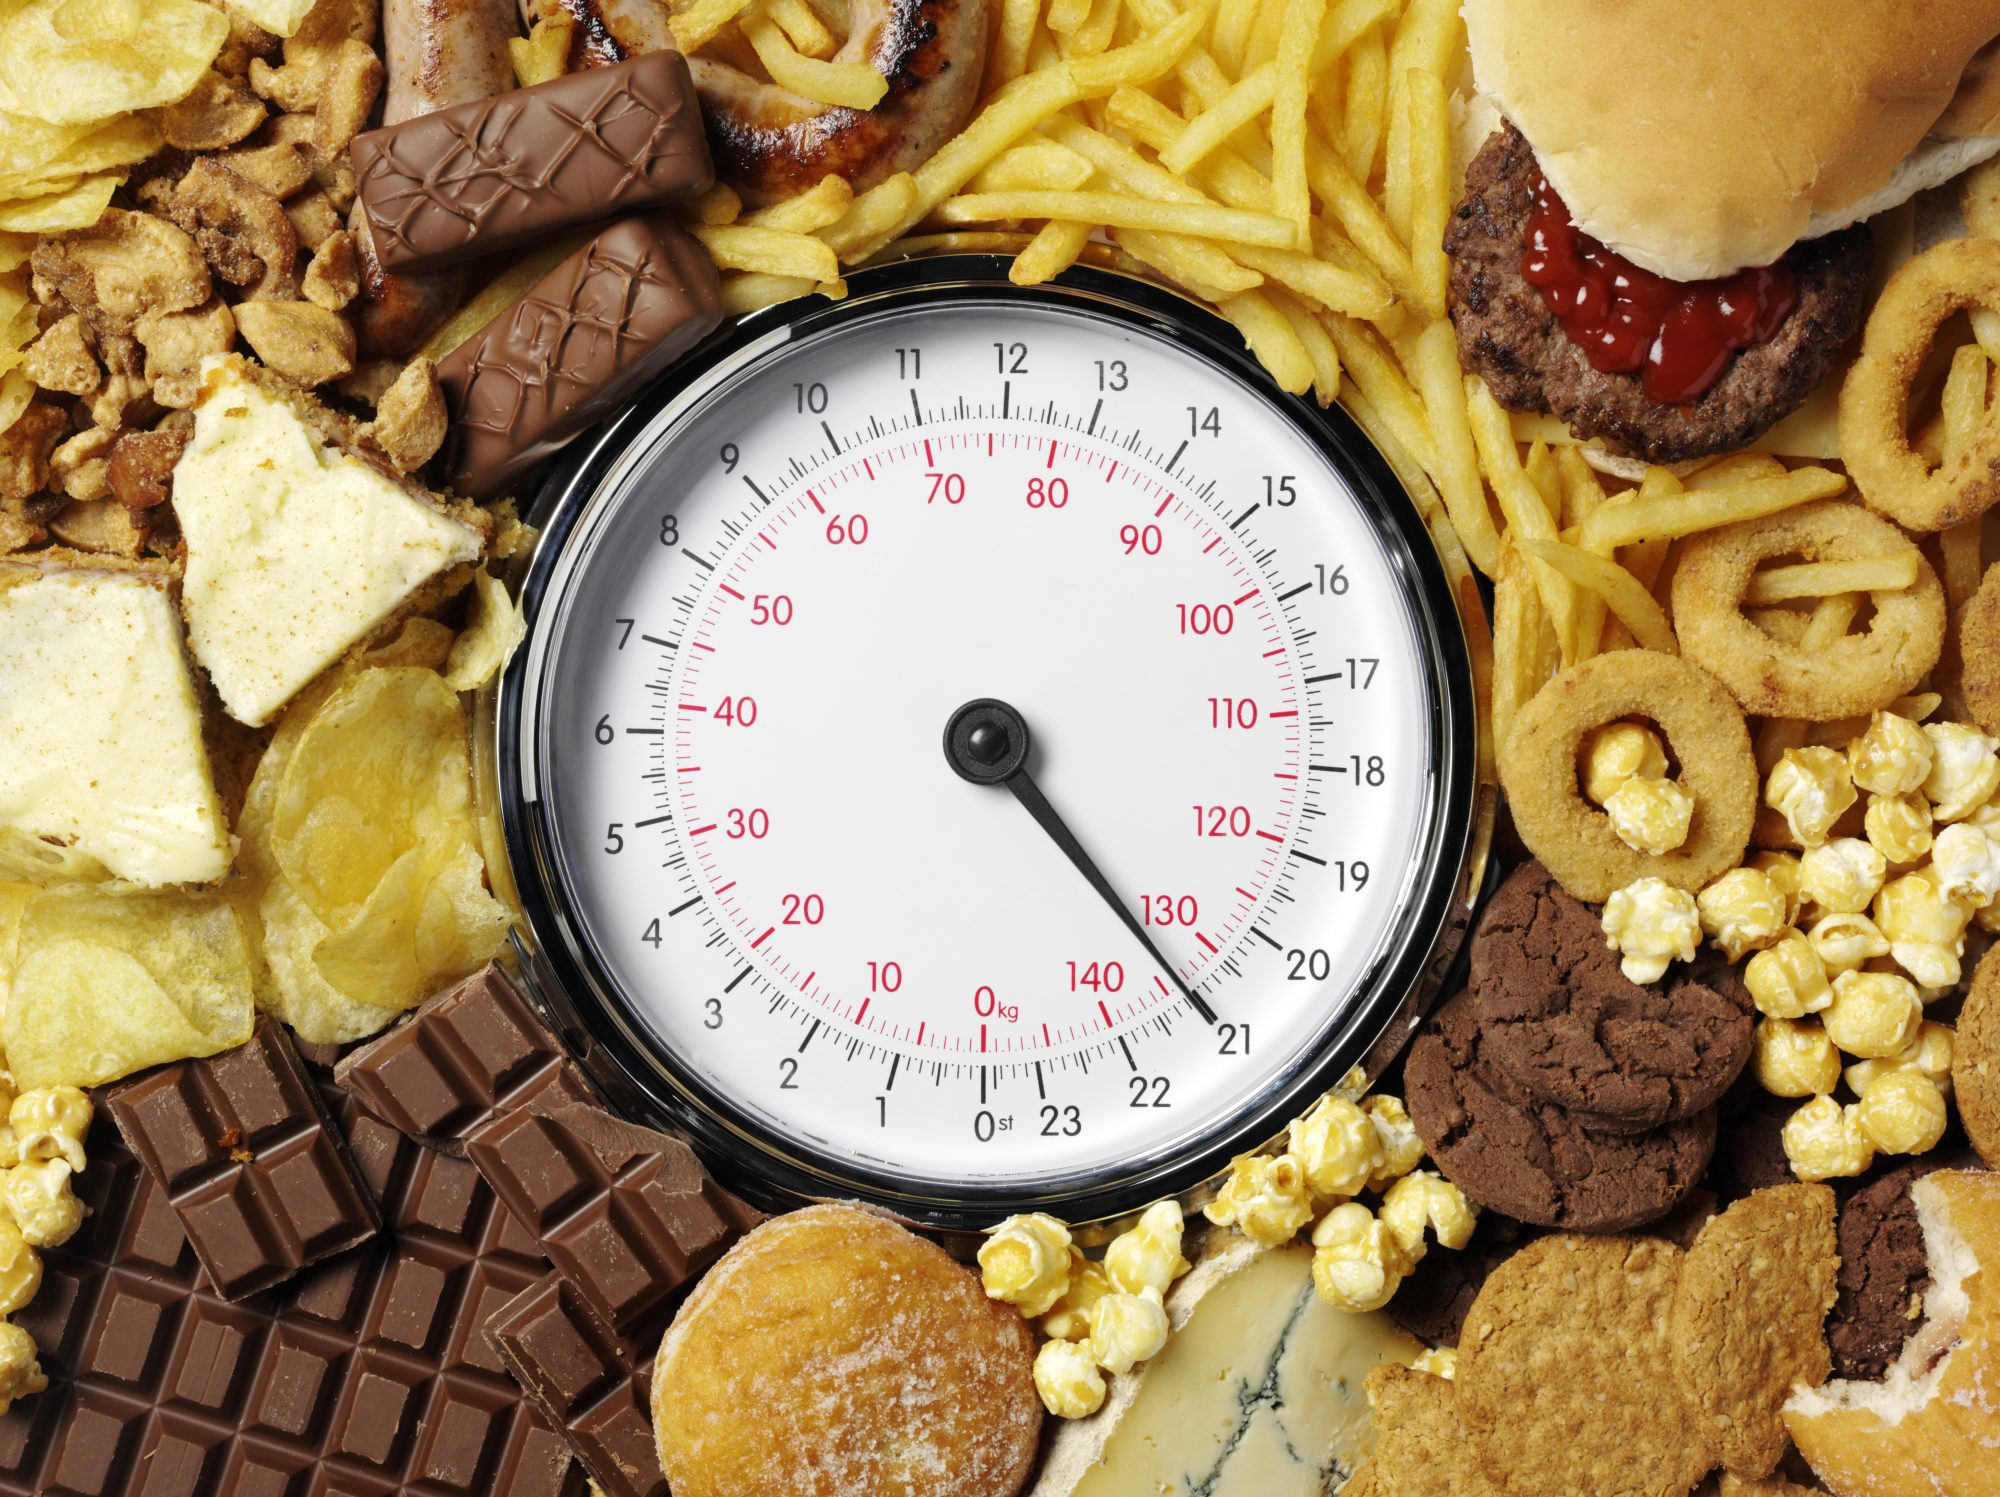 You're eating too many processed foods